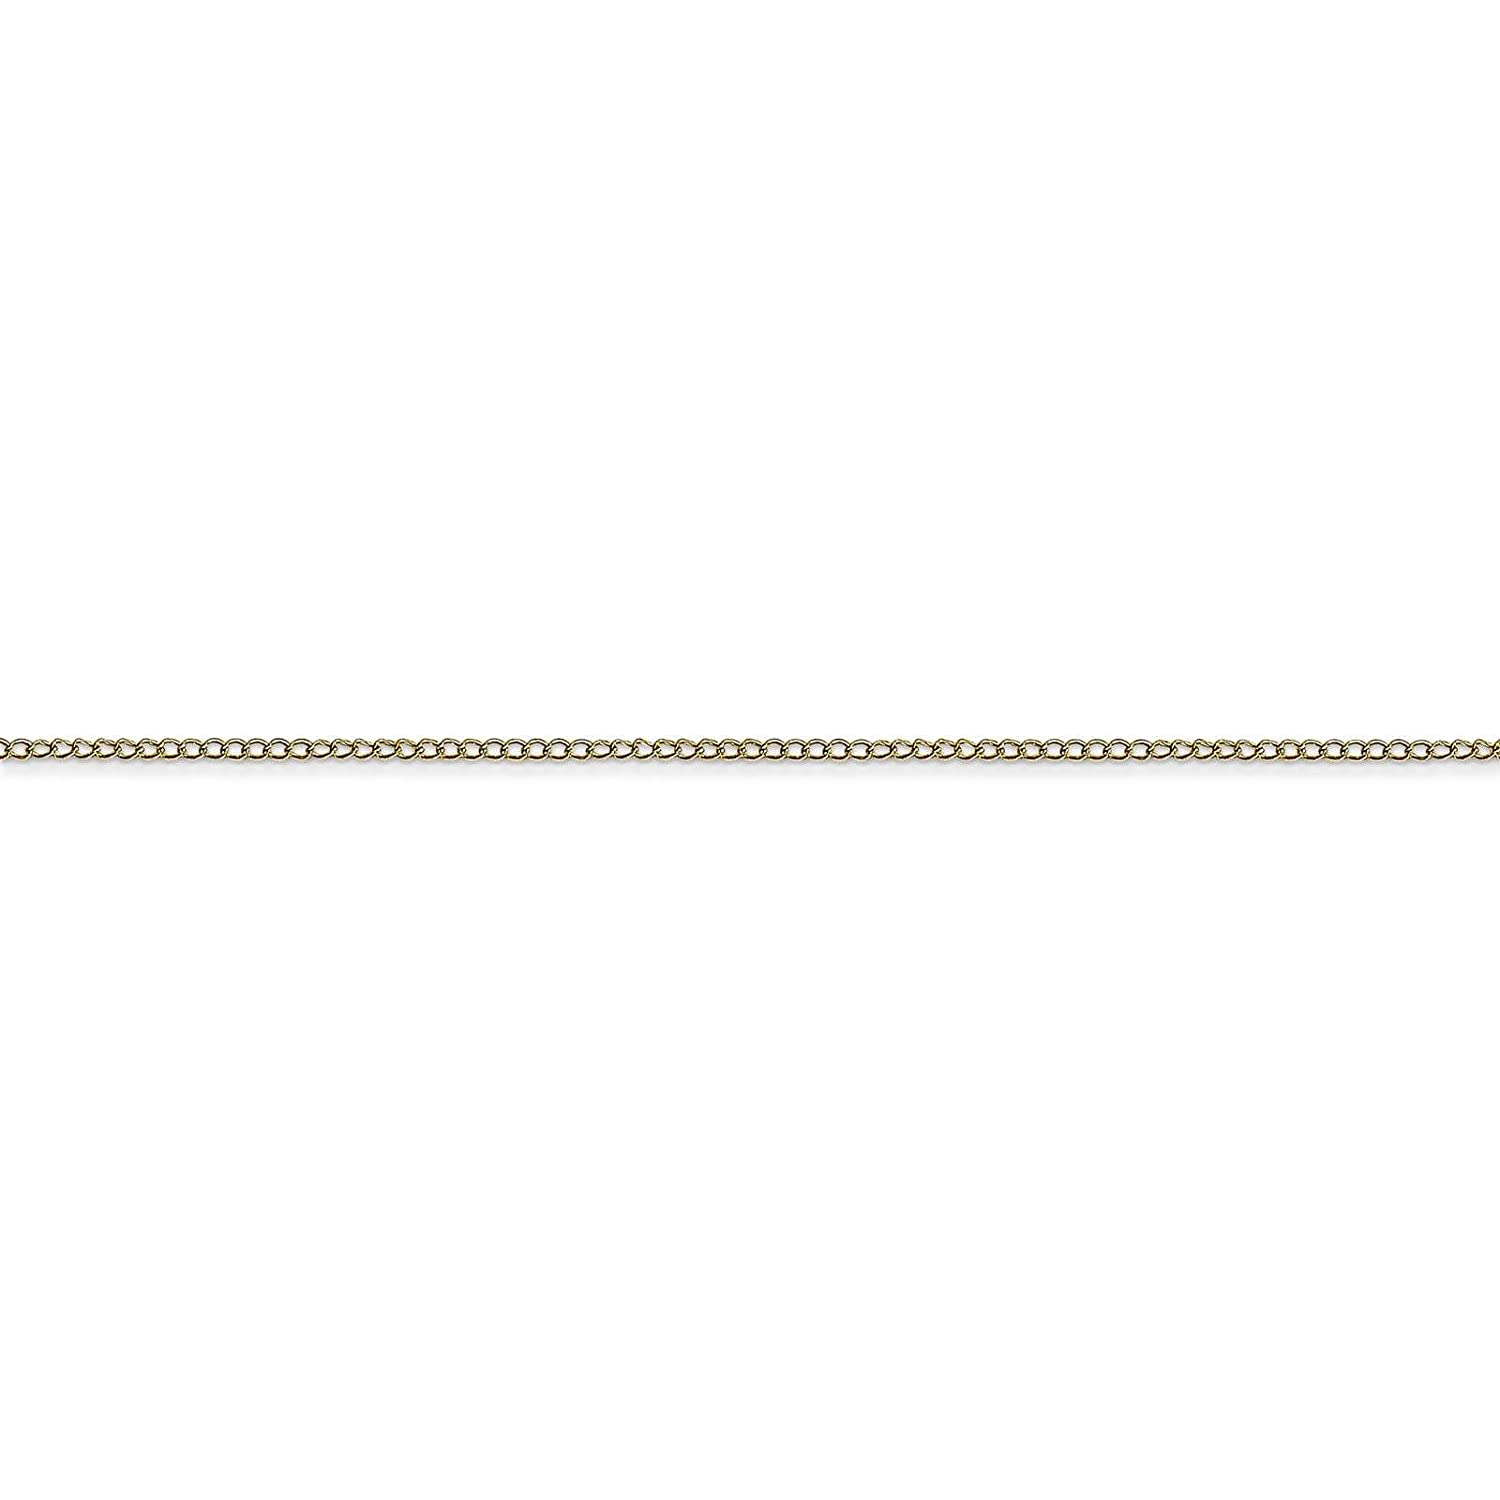 10k Yellow Gold Polished 0.5mm Carded Curb Link Rope Chain Necklace 16-24